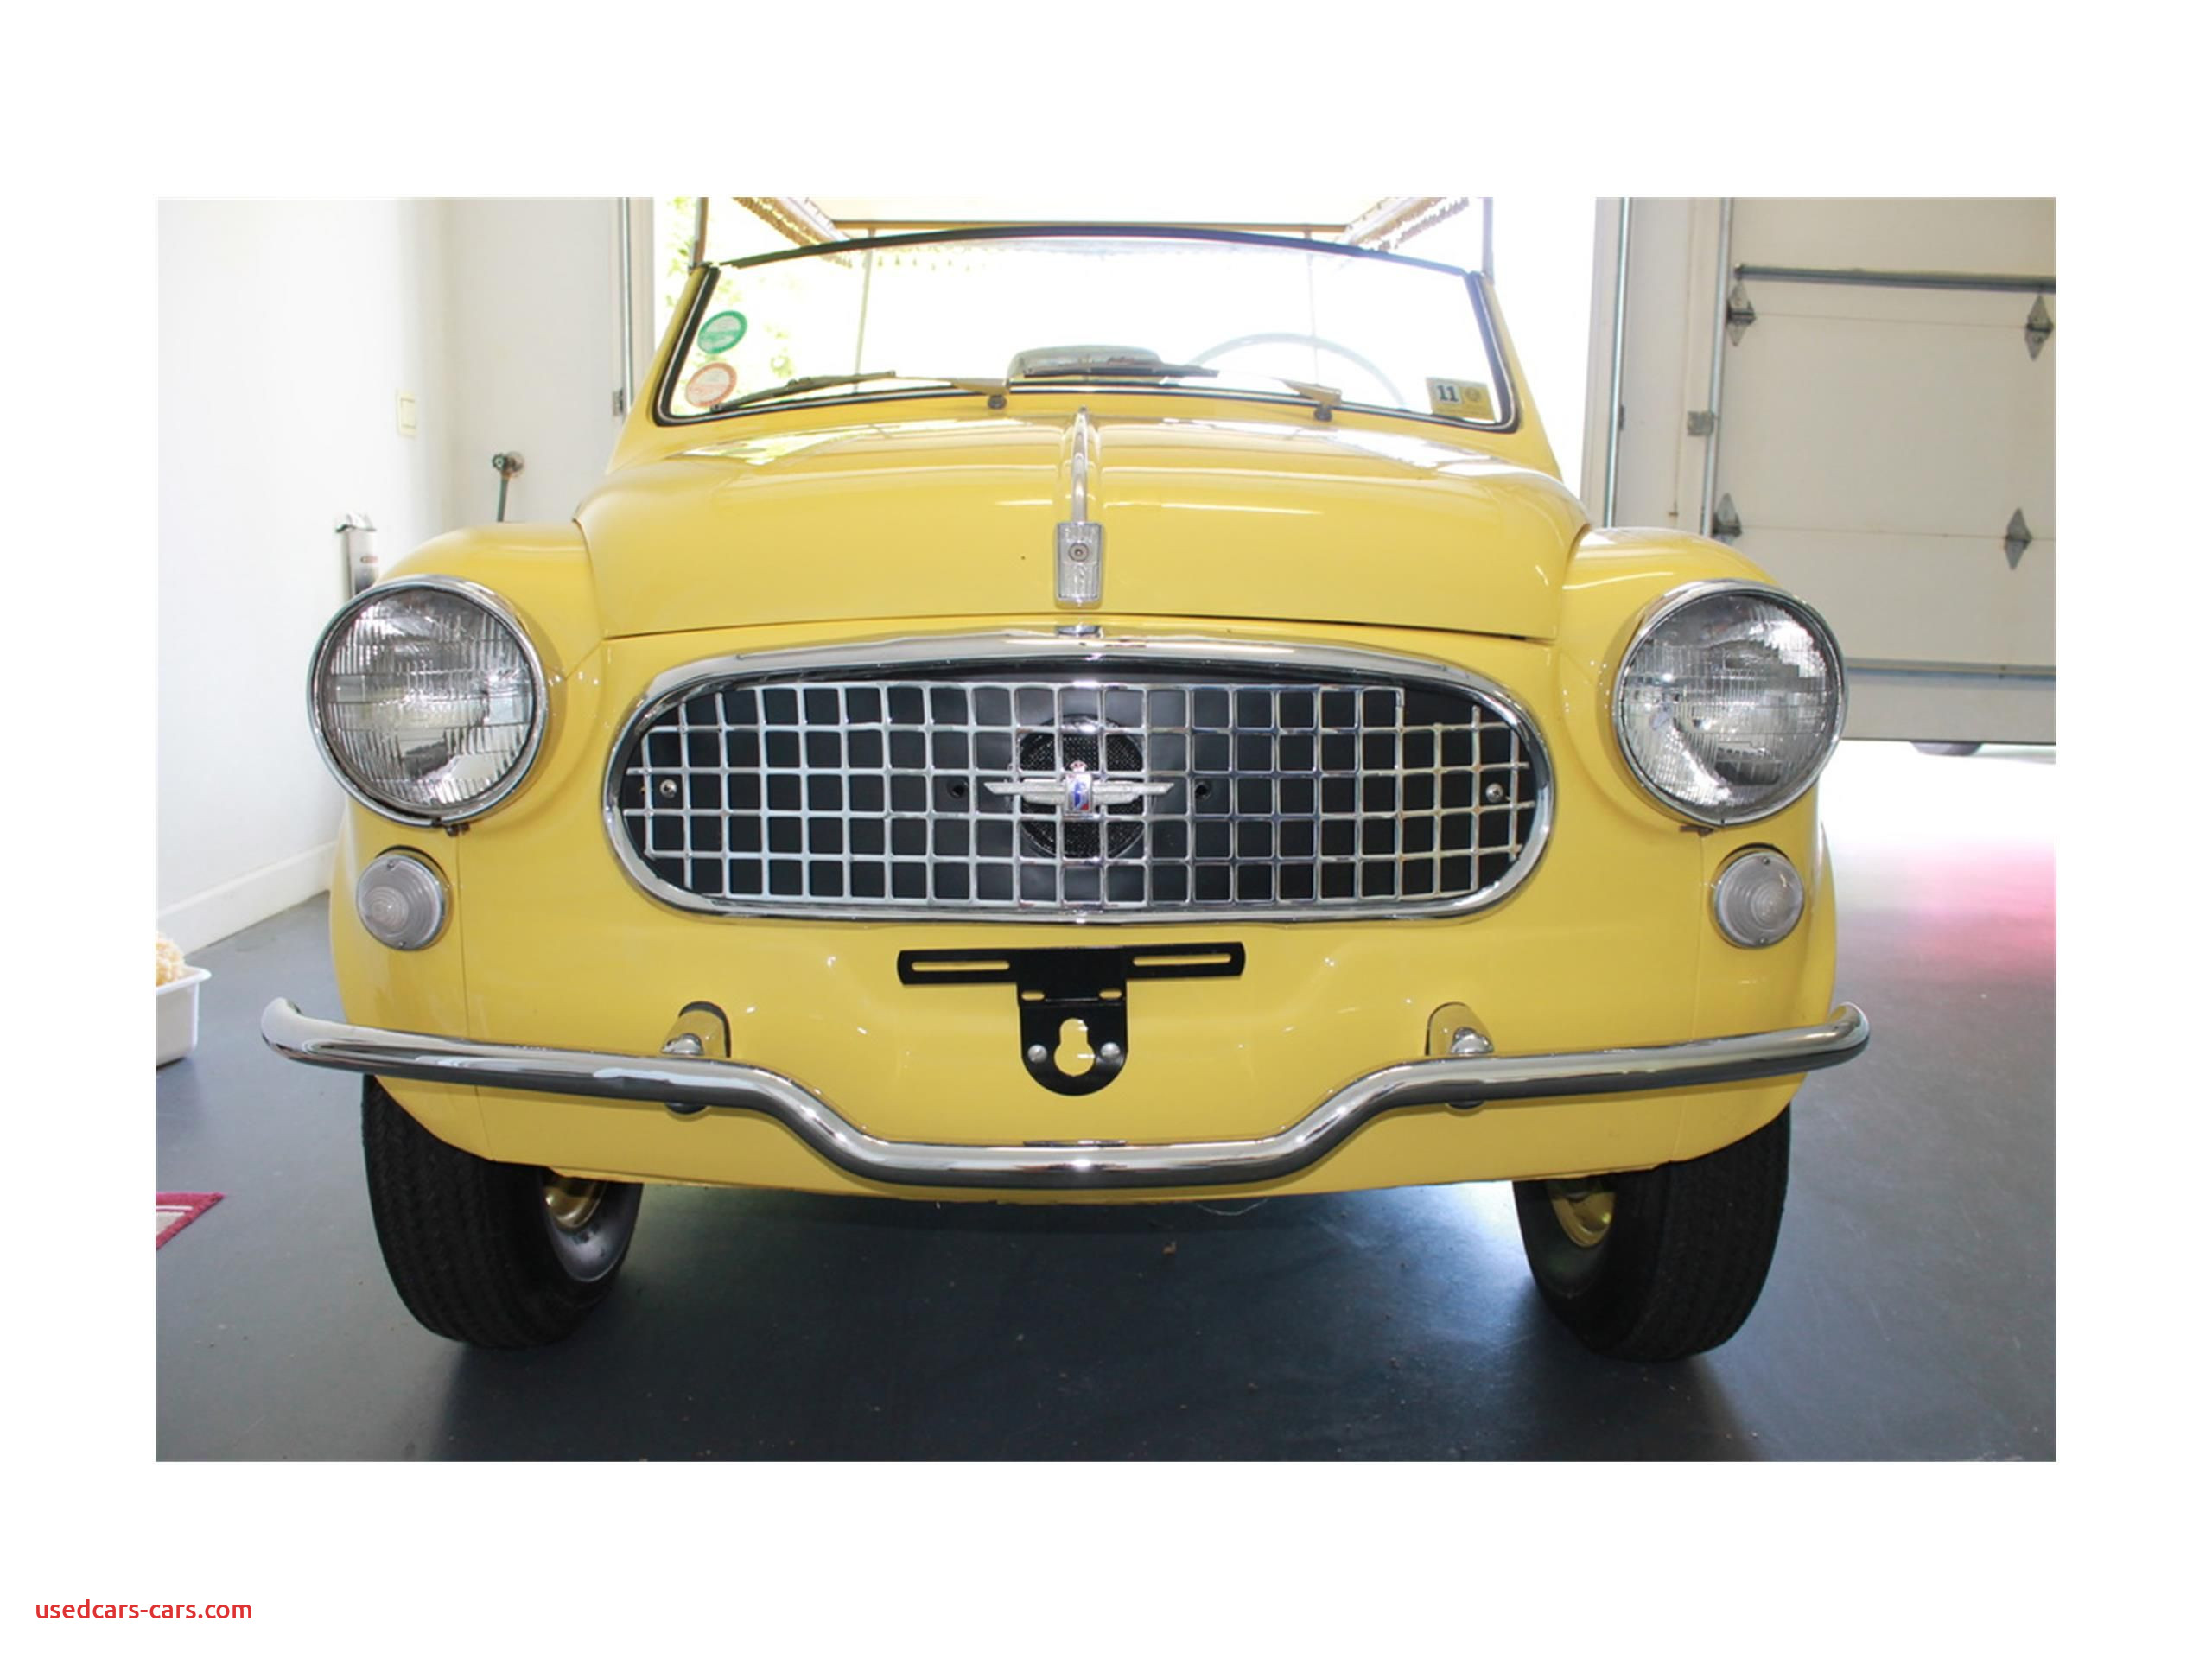 Used Cars for Sale 63376 Inspirational 1960 Fiat 600 for Sale